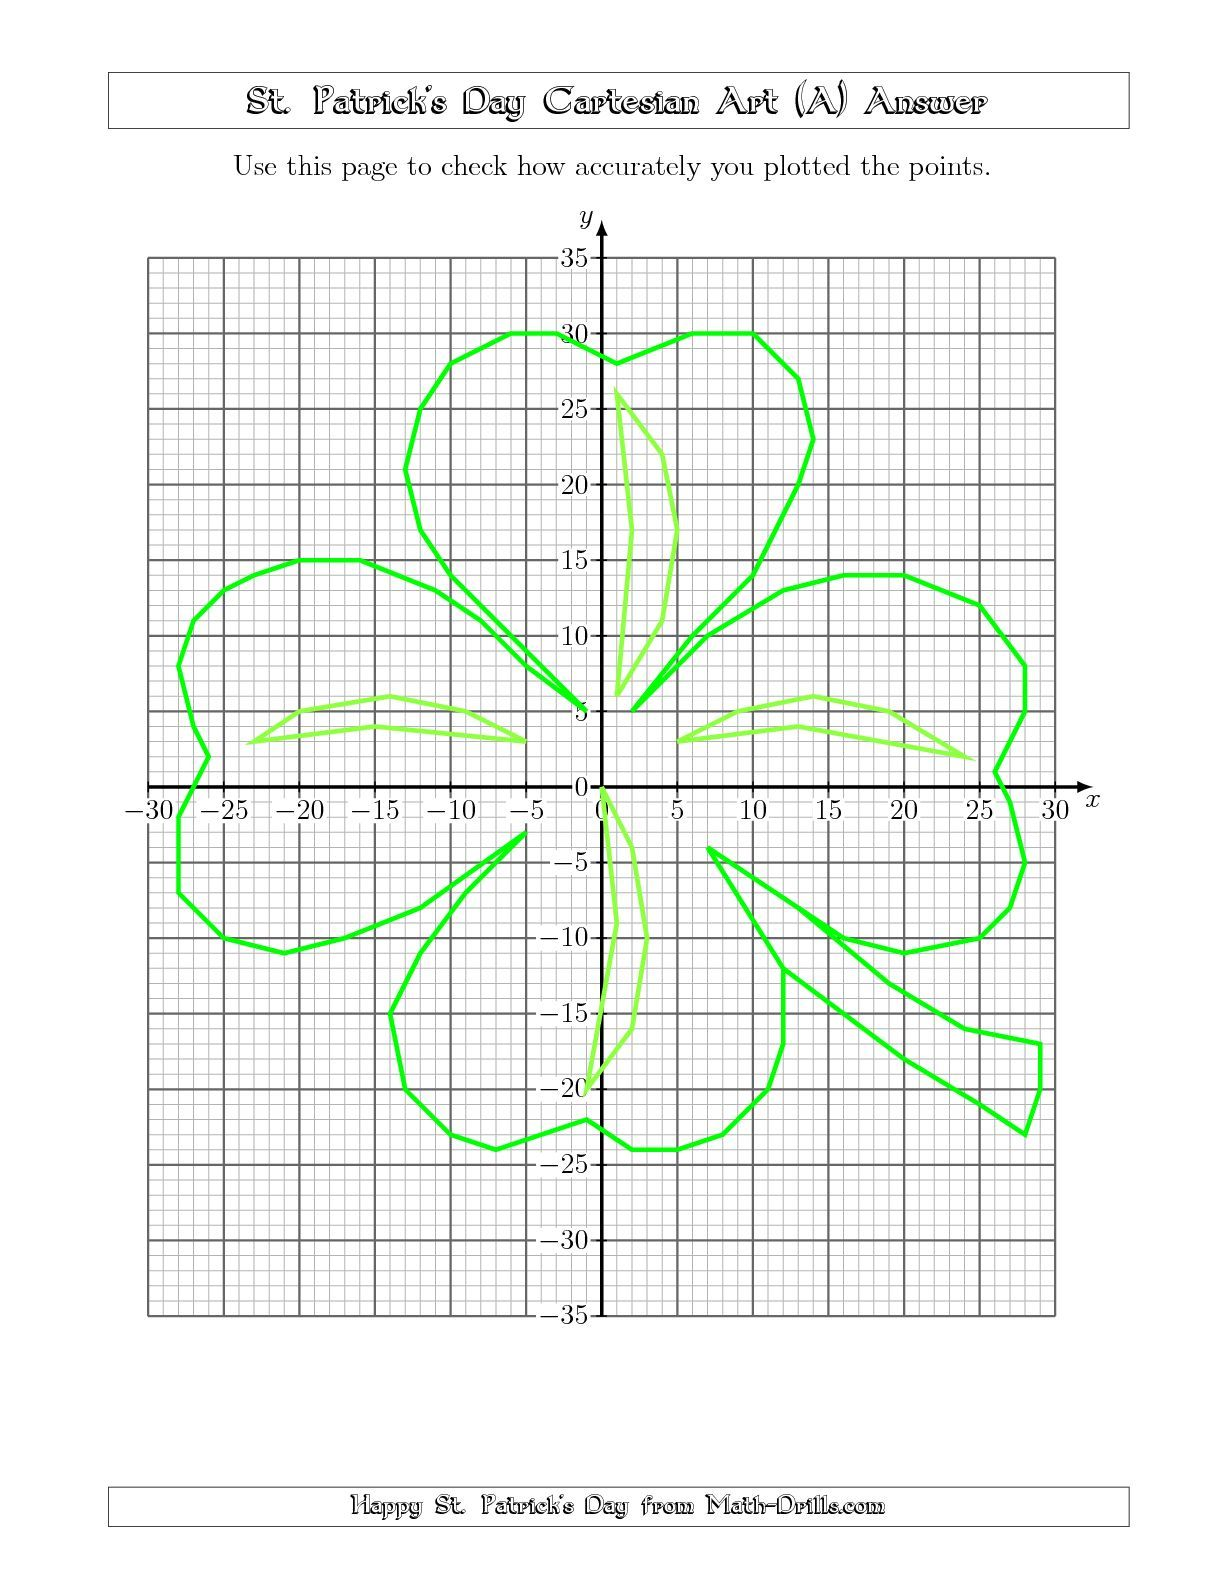 worksheet Holiday Coordinate Graphing Pictures new st patricks day cartesian art shamrock math worksheet freemath